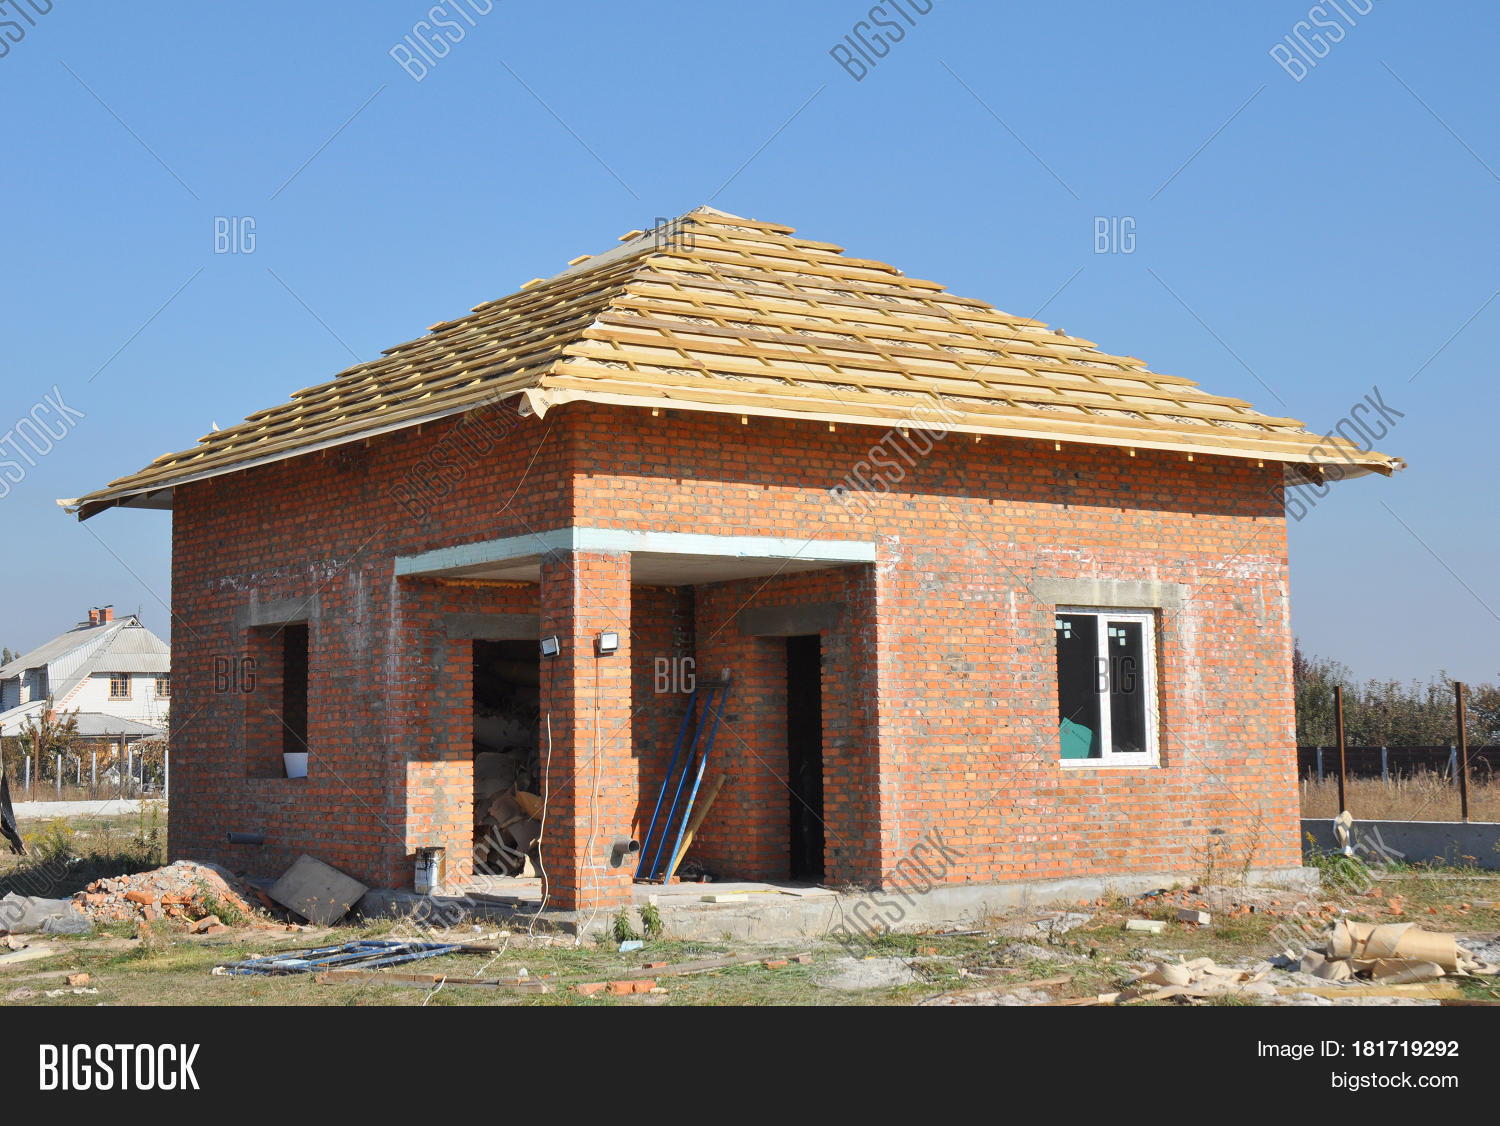 Brick House Construction Site. Roofing Construction. Roof With Wooden  Trusses And Insulation Membrane Ready